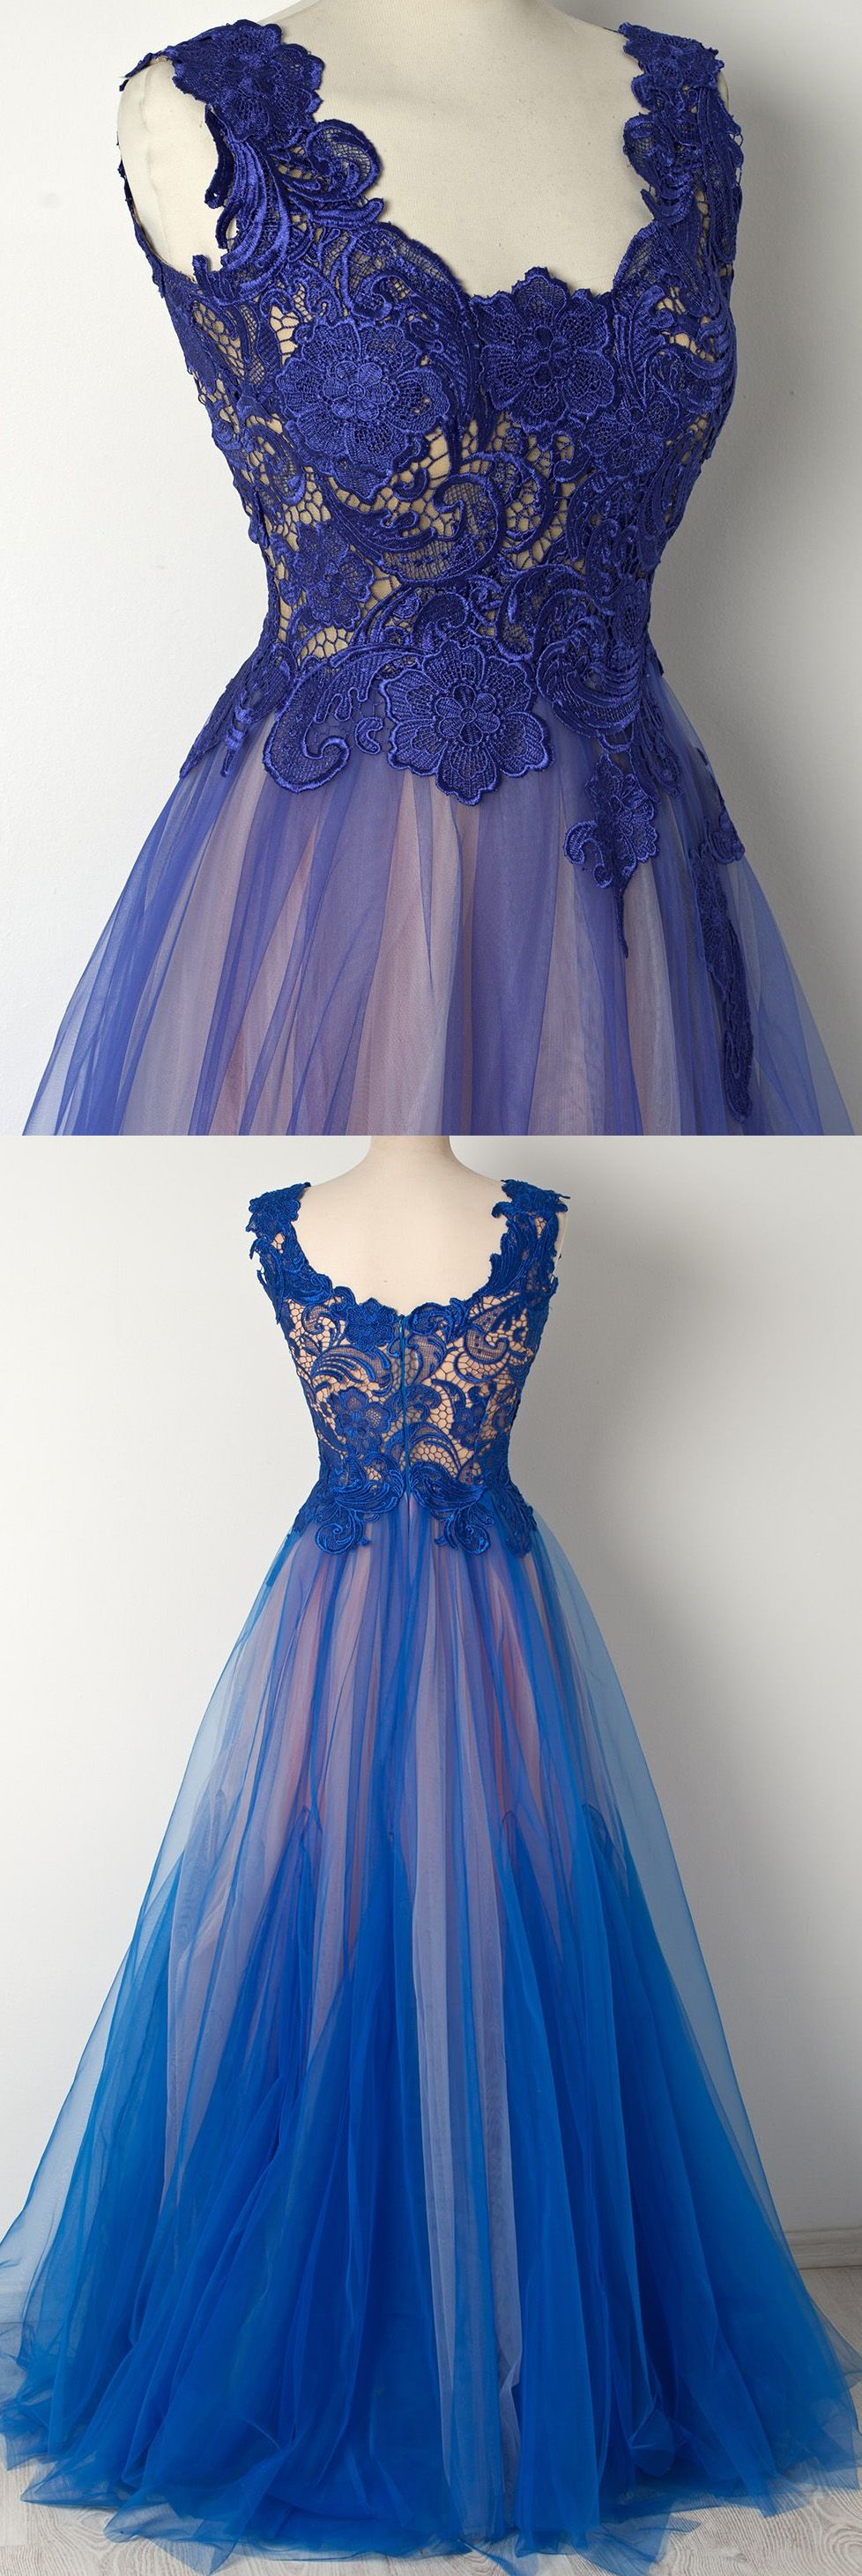 Hot sale long prom evening dress suitable royal blue evening dresses